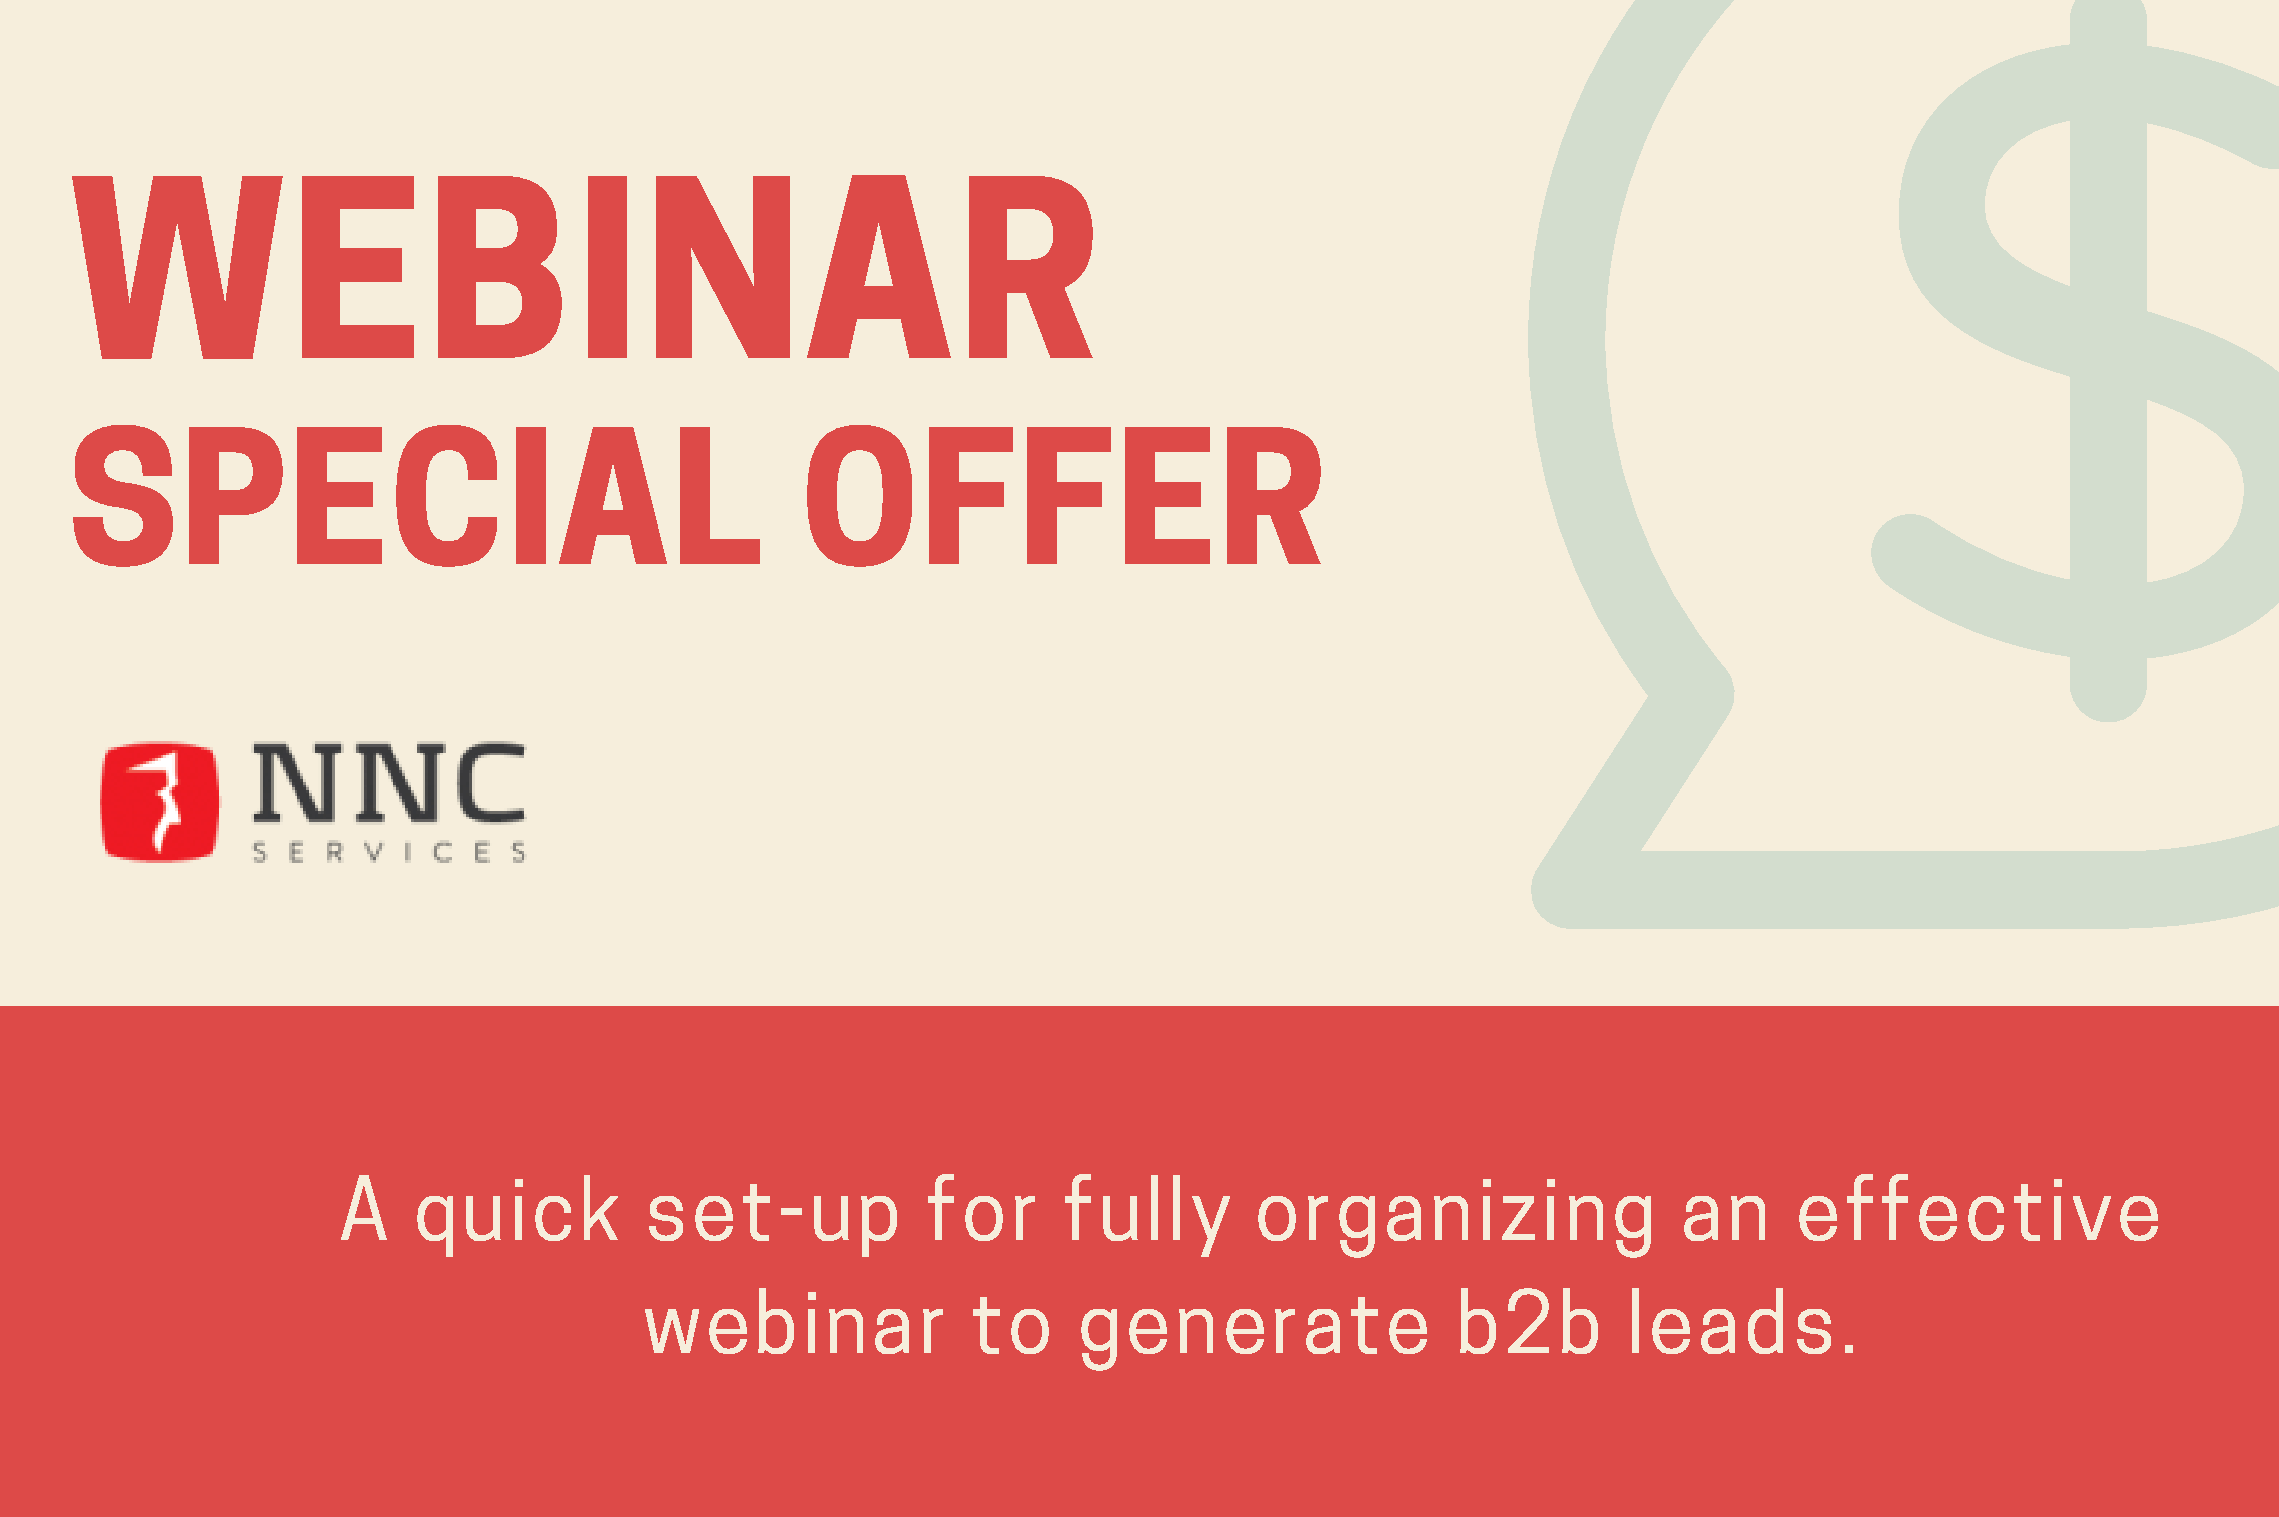 NNC-Webinar Offer Promo blog